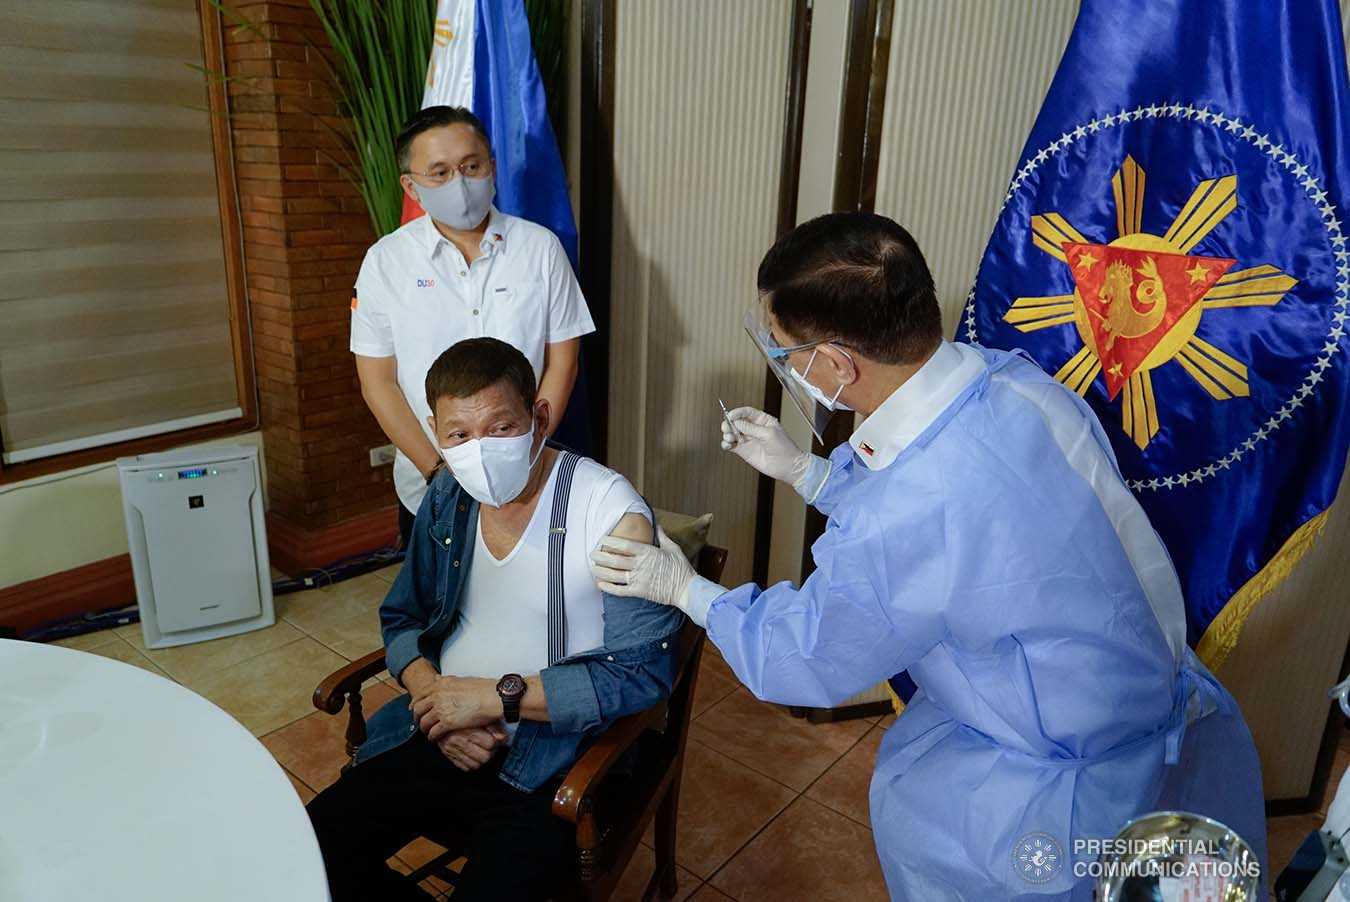 President Rodrigo Roa Duterte receives a shot of Covid-19 vaccine administered by Health Secretary Francisco Duque III at the Malacañang Golf (Malago) Clubhouse in Malacañang Park, Manila on May 3, 2021. KING RODRIGUEZ/ PRESIDENTIAL PHOTO